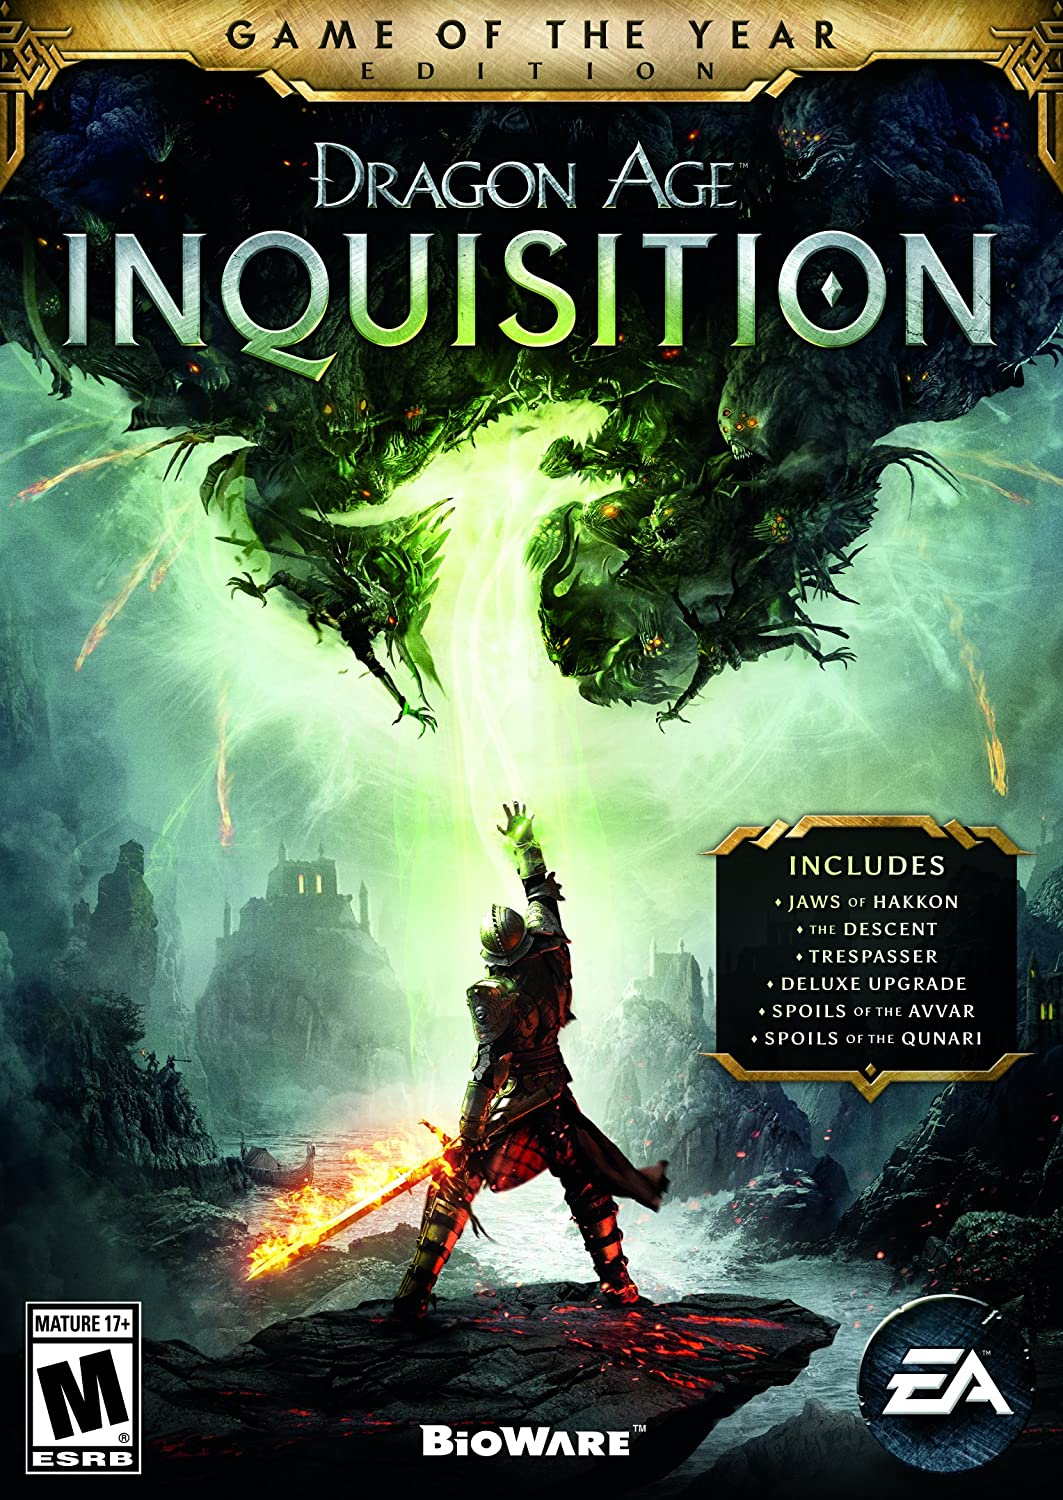 Dragon Age: Inquistion - Game of the Year Edition - PC [Direct to Account]